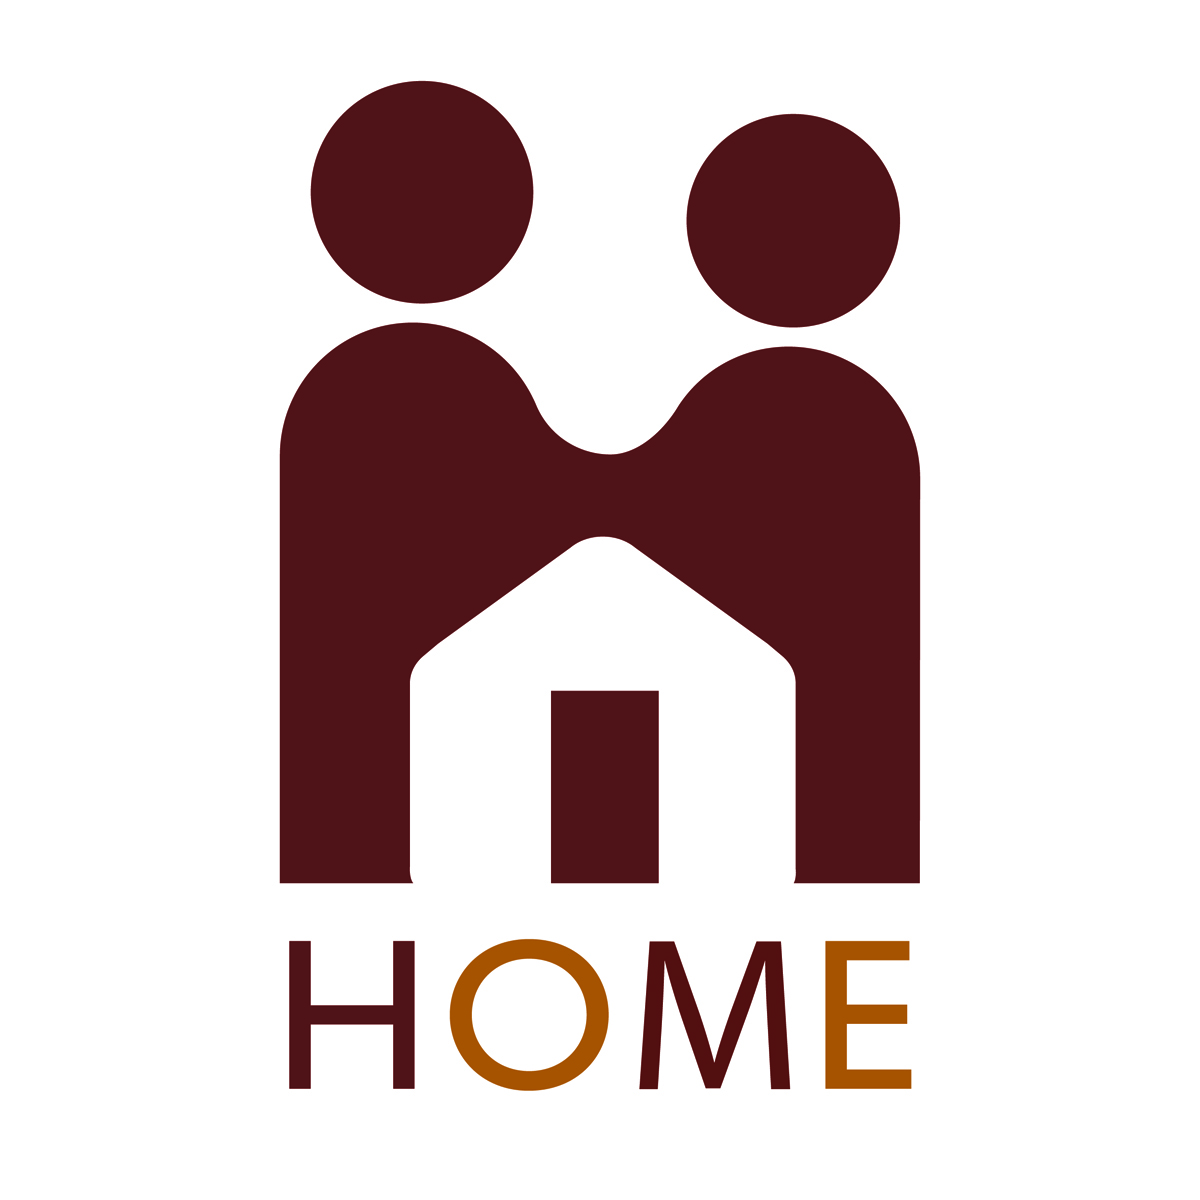 HOME-square-logo-hi res.jpg